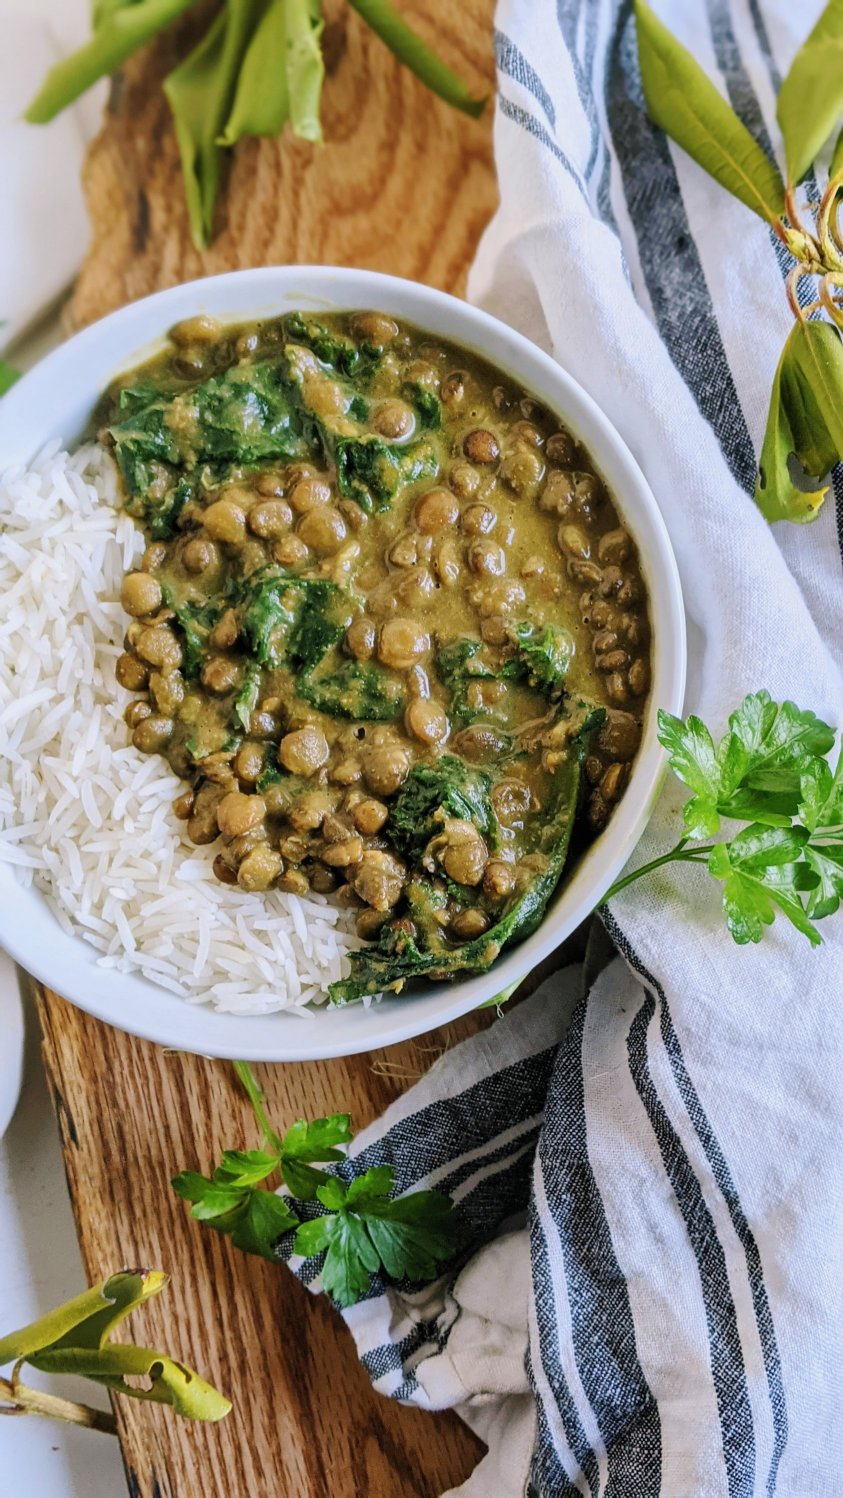 coconut curry lentils vegan gluten free coconut milk lentil curry recipe healthy high protein plant based veganuary dairy free meal prep with lentils recipe